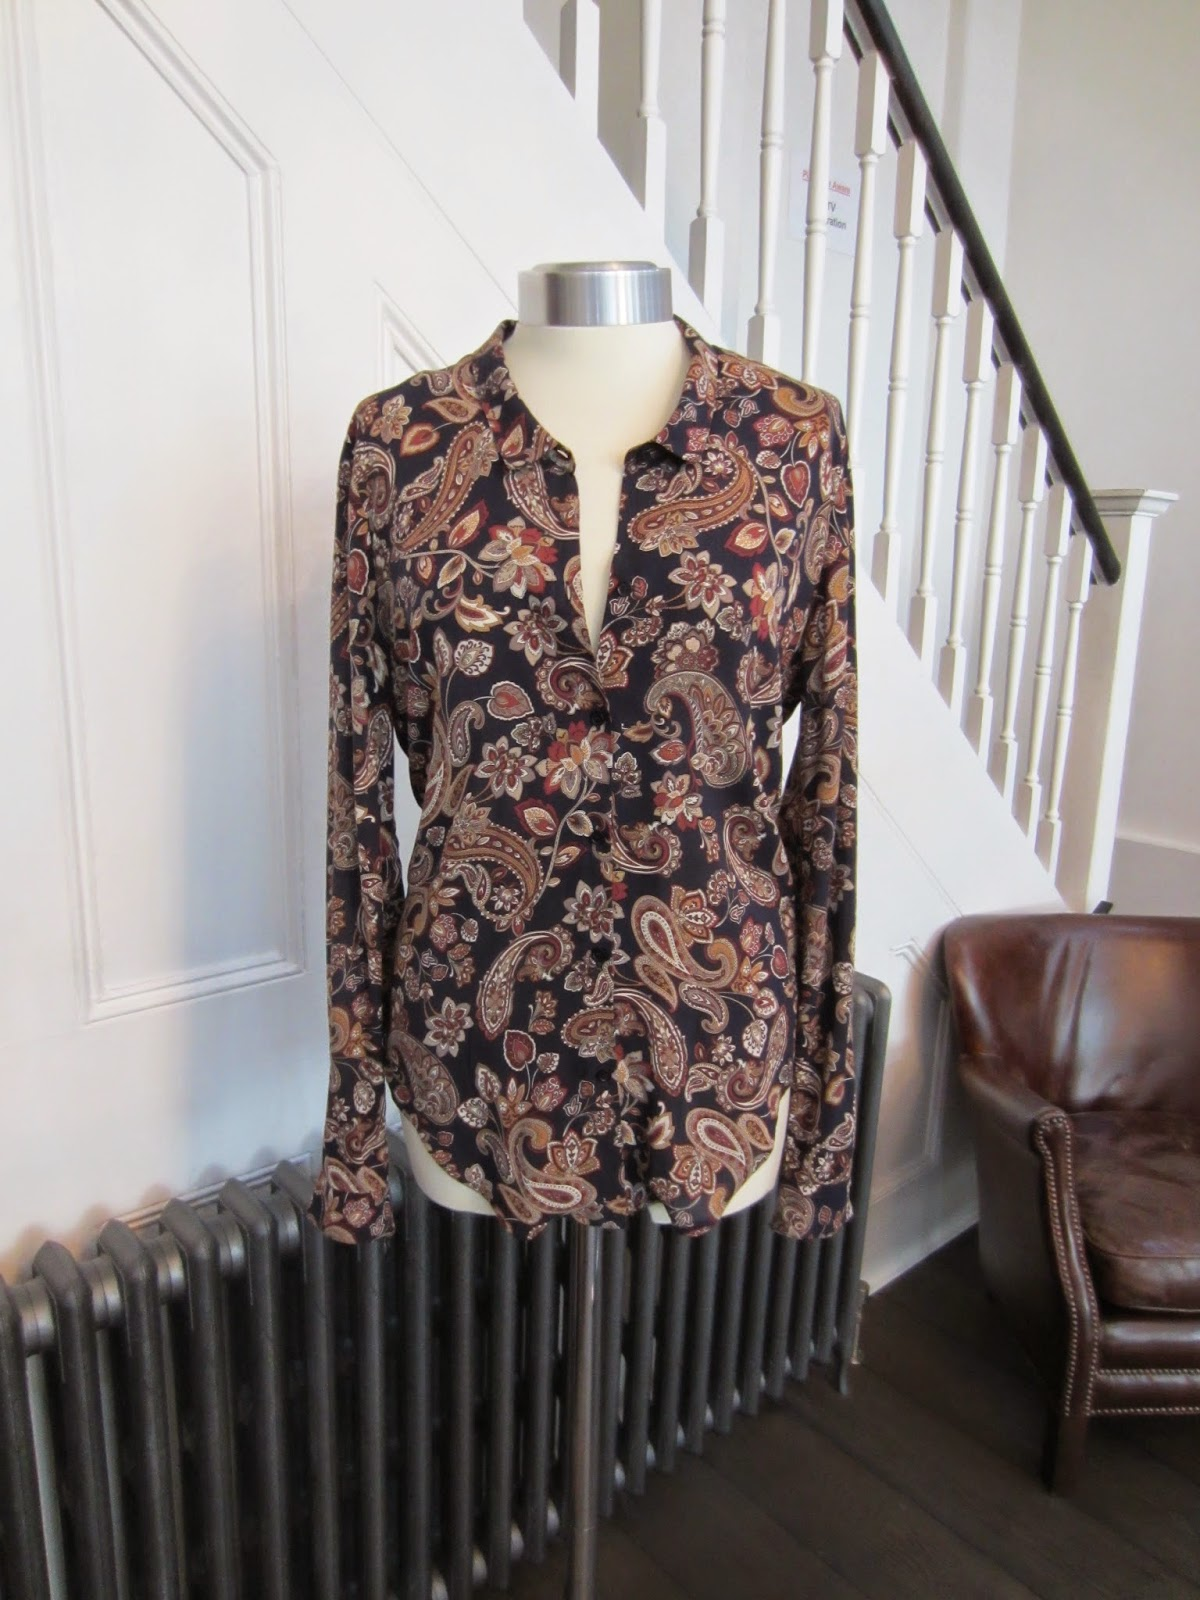 The Kooples Navy/Paisley Print Shirt